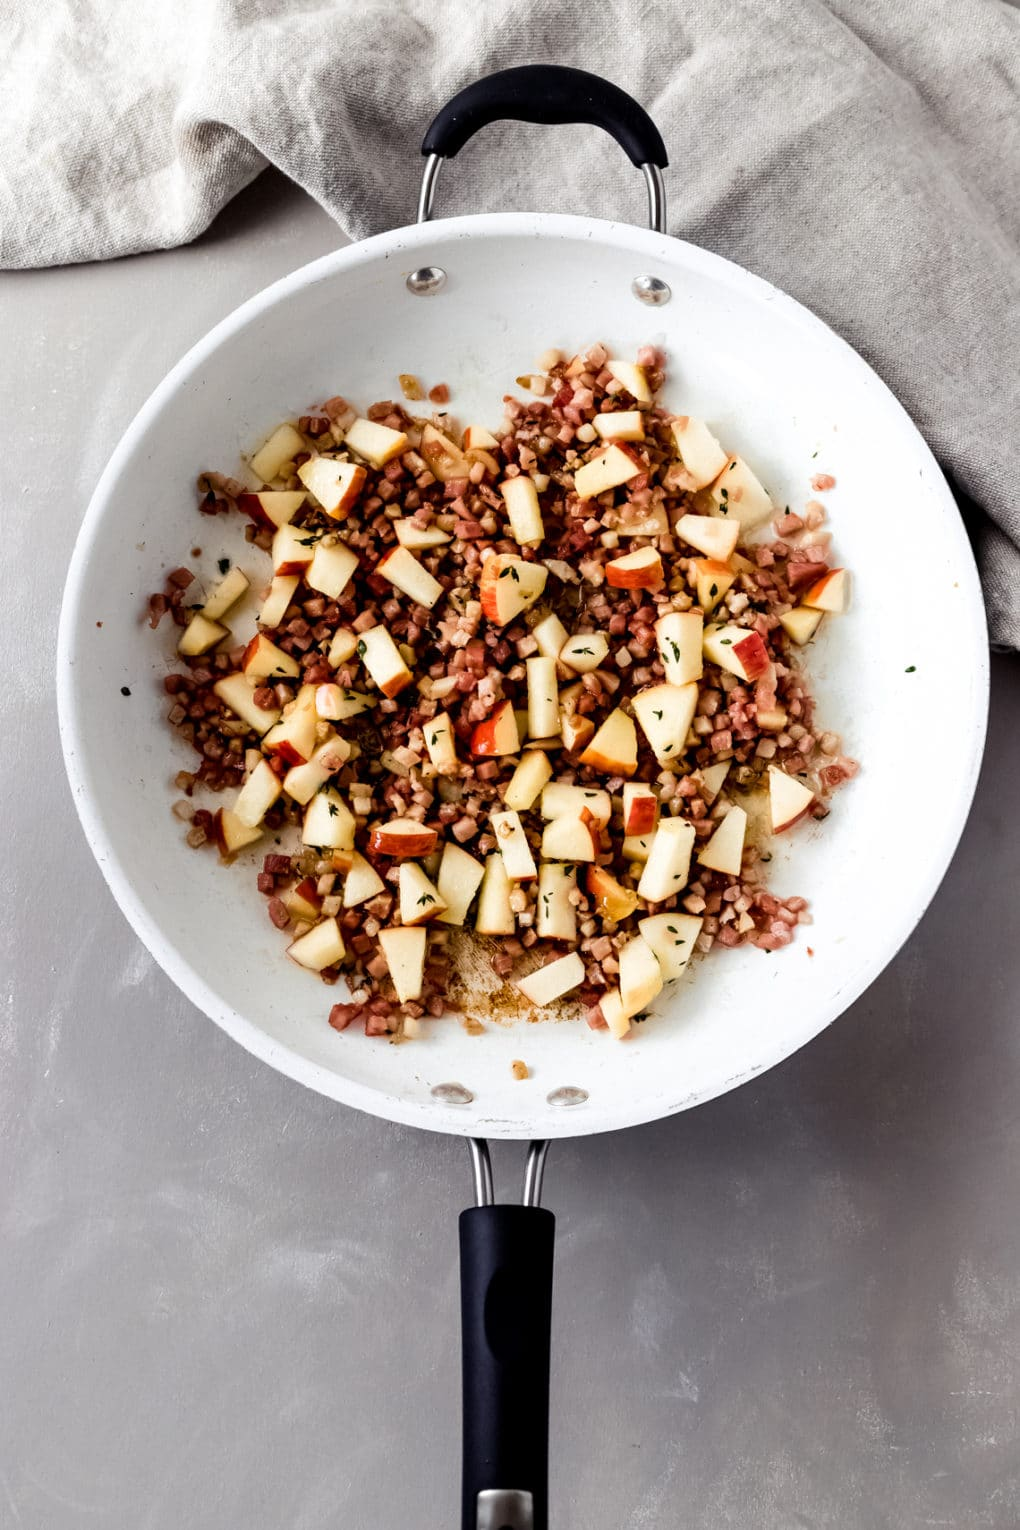 pancetta, apples, and thyme cooking in a skillet